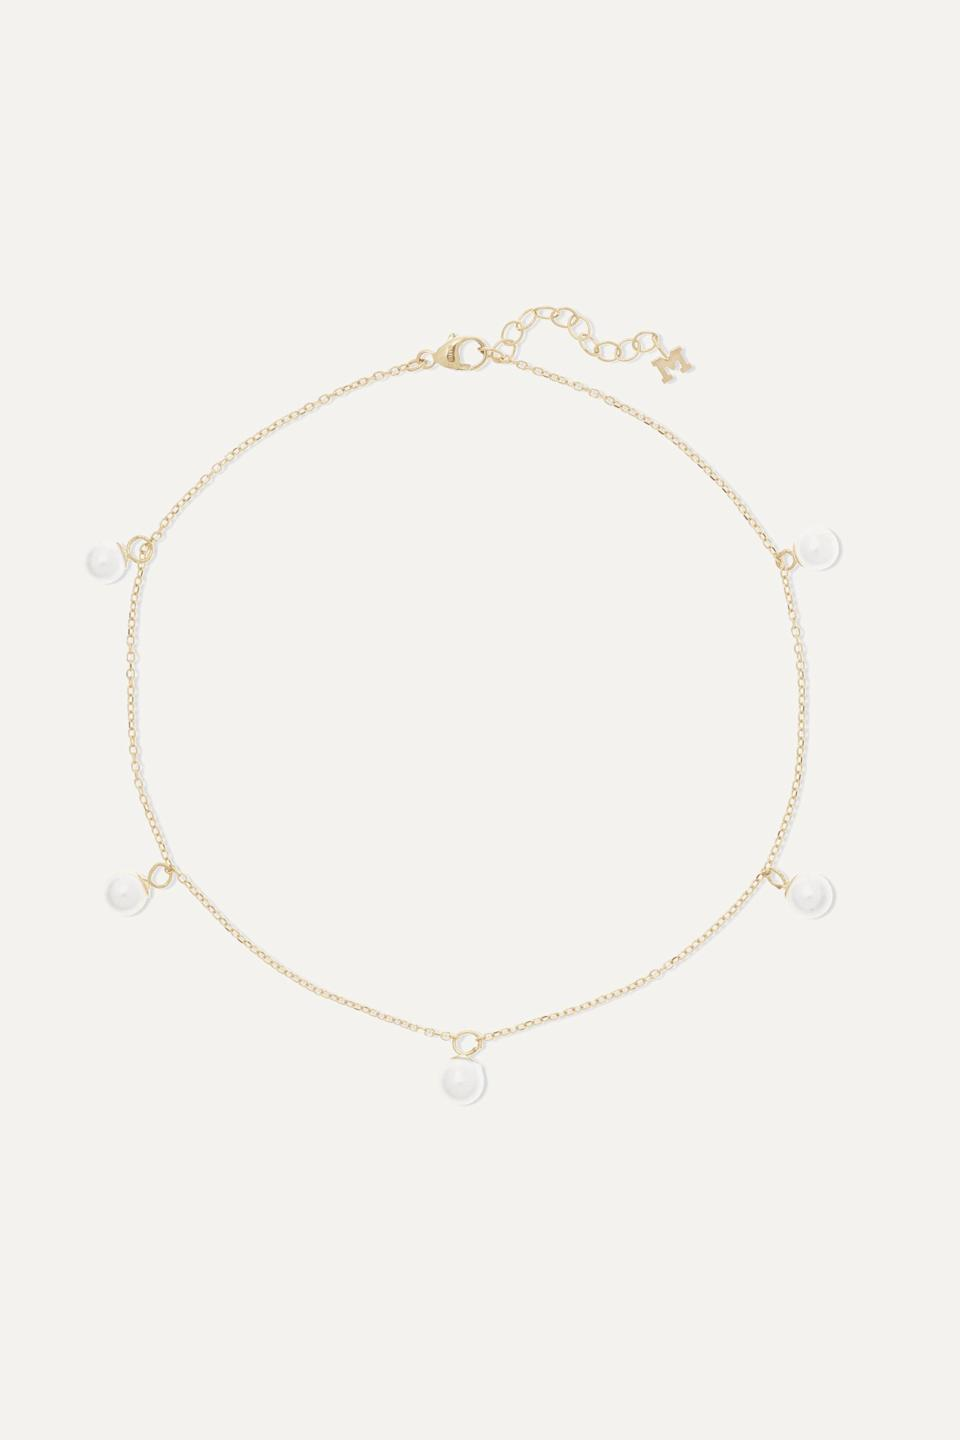 """<p><strong>Mateo</strong></p><p>net-a-porter.com</p><p><strong>$450.00</strong></p><p><a href=""""https://go.redirectingat.com?id=74968X1596630&url=https%3A%2F%2Fwww.net-a-porter.com%2Fen-us%2Fshop%2Fproduct%2Fmateo%2F14-karat-gold-pearl-anklet%2F1187658&sref=https%3A%2F%2Fwww.cosmopolitan.com%2Fstyle-beauty%2Ffashion%2Fg35942347%2Fsummer-2021-jewelry-trends%2F"""" rel=""""nofollow noopener"""" target=""""_blank"""" data-ylk=""""slk:Shop Now"""" class=""""link rapid-noclick-resp"""">Shop Now</a></p><p>A pearl anklet is just what you need to pair with your cute sandals this season.</p>"""